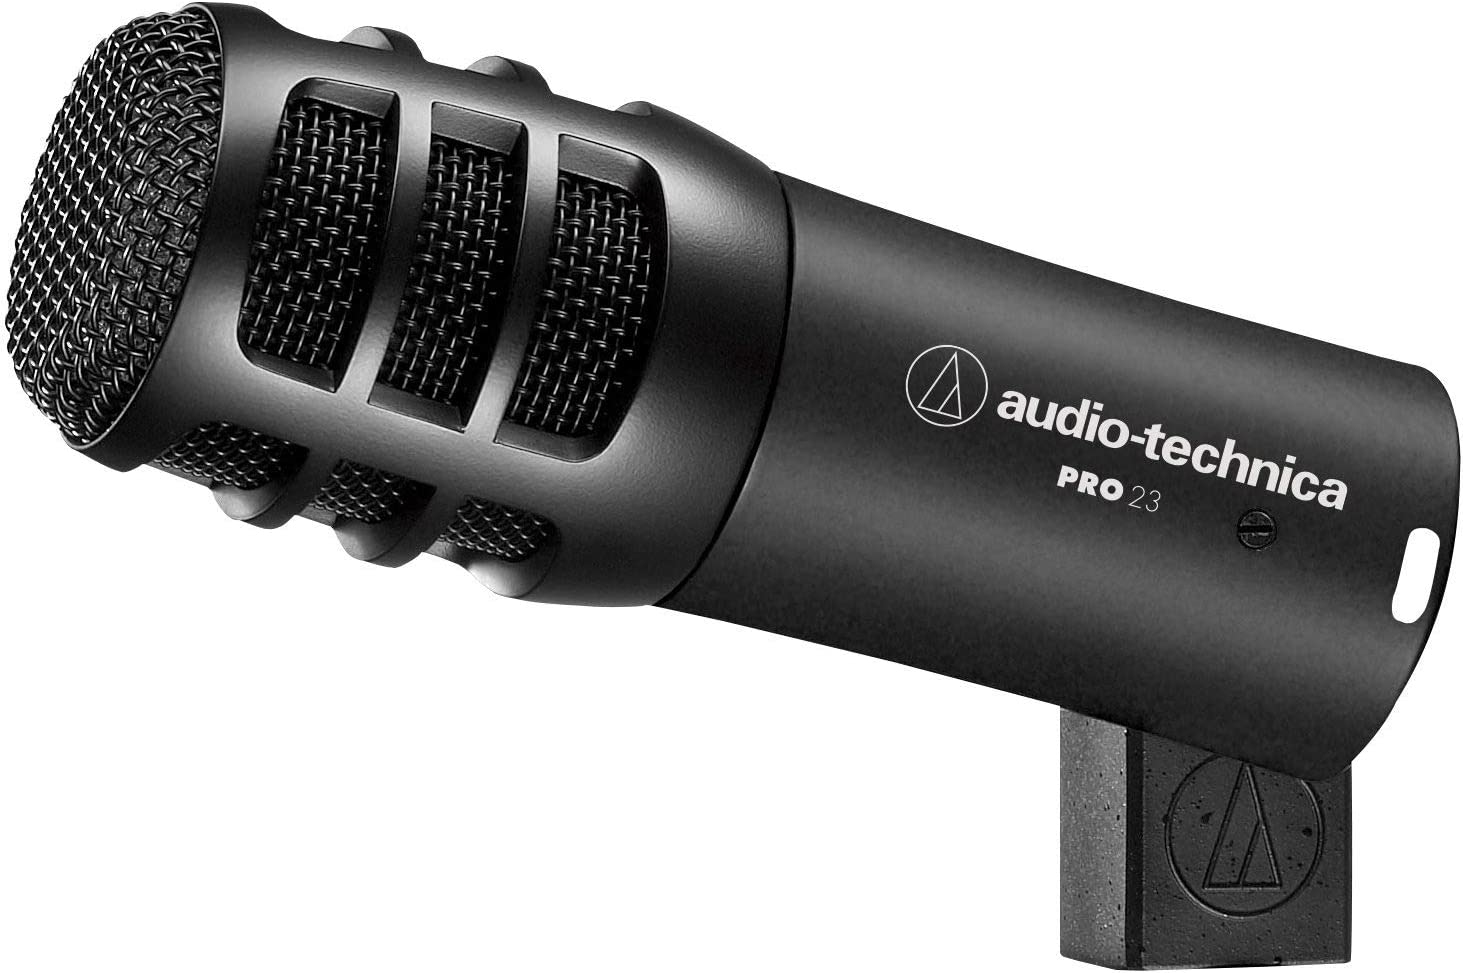 Audio-Technica PRO 23 Cardioid Dynamic Instrument Microphone: Musical Instruments